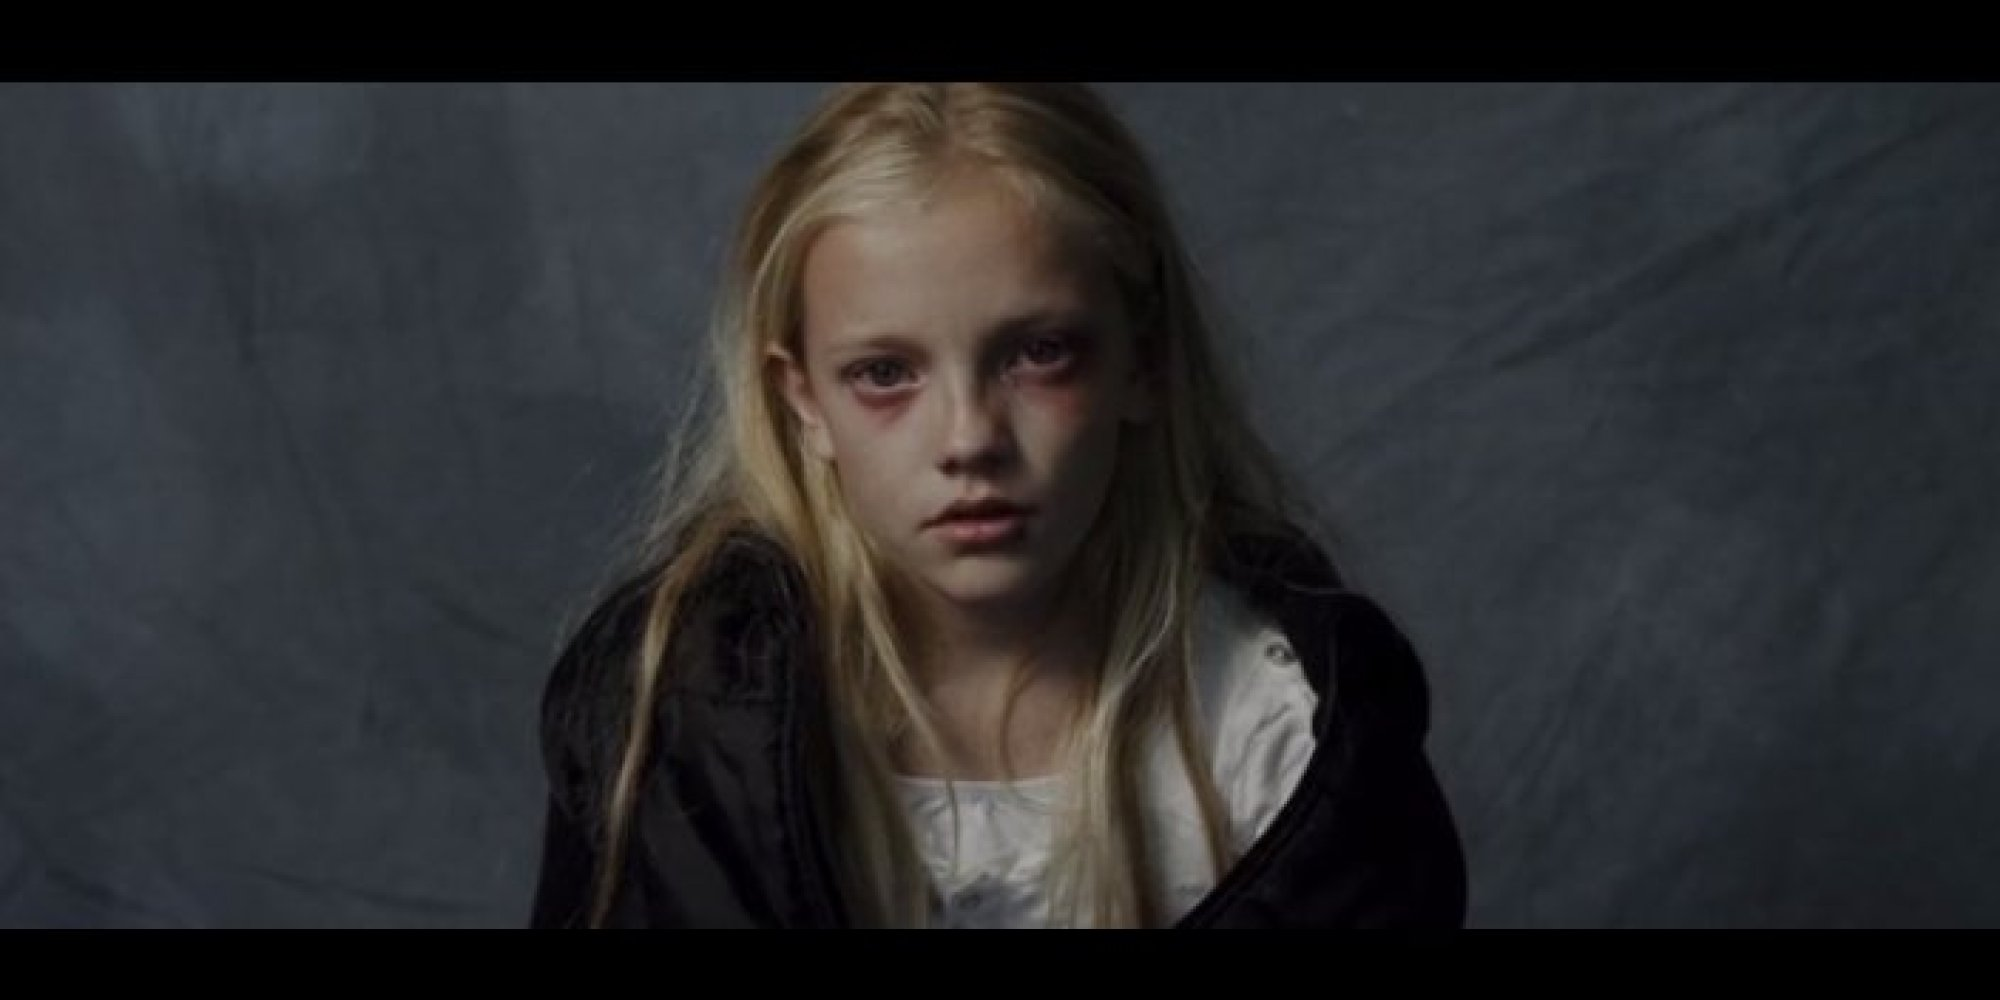 Jaw Dropping Short Film Shines Light On Child Abuse